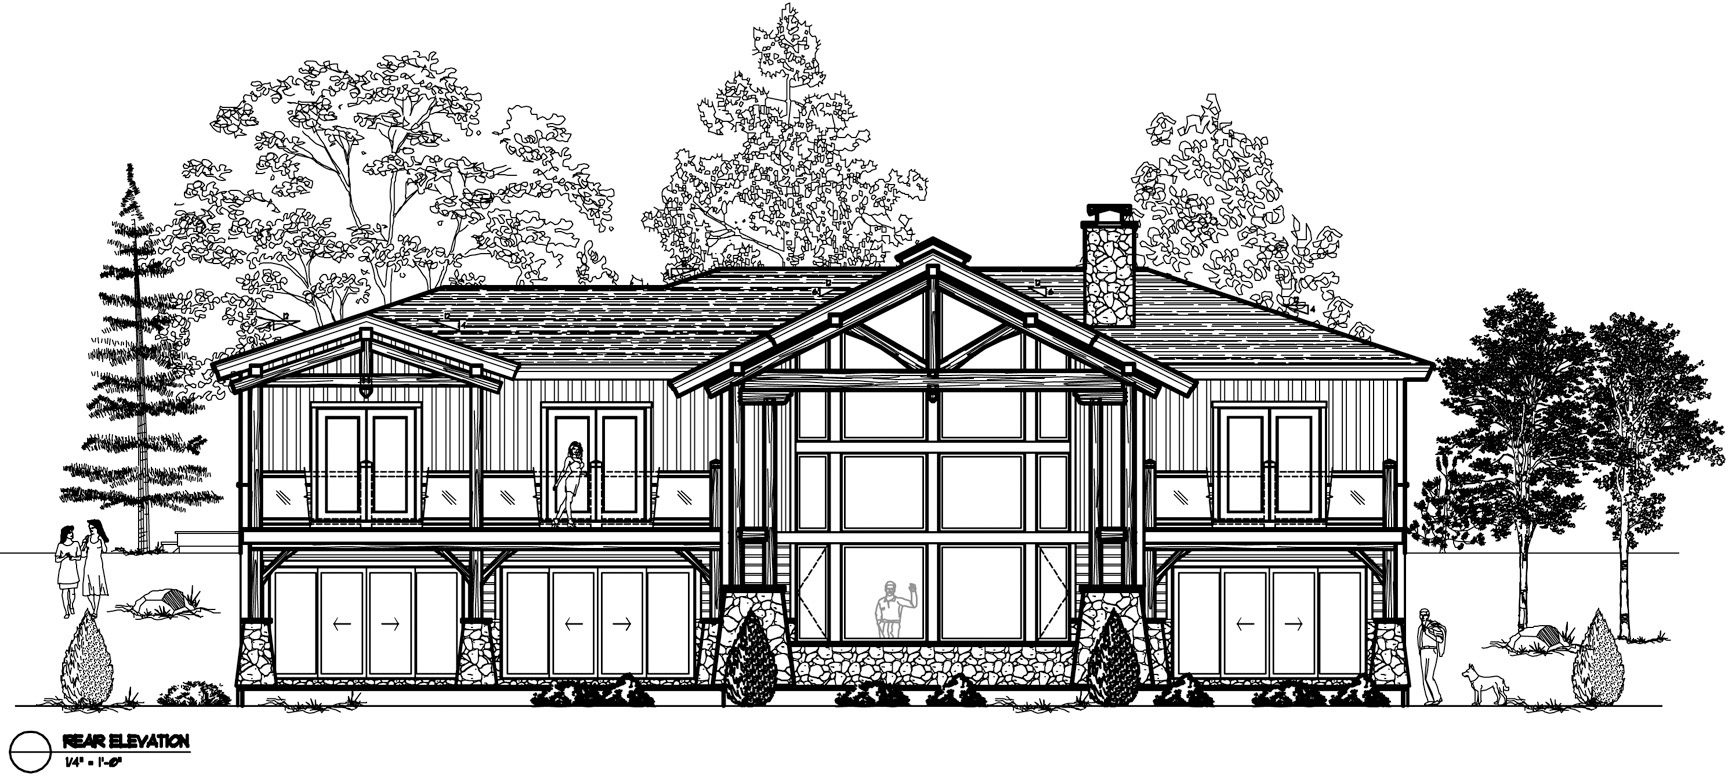 Normerica Timber Frames, House Plan, The Highrock 3579, Rear Elevation